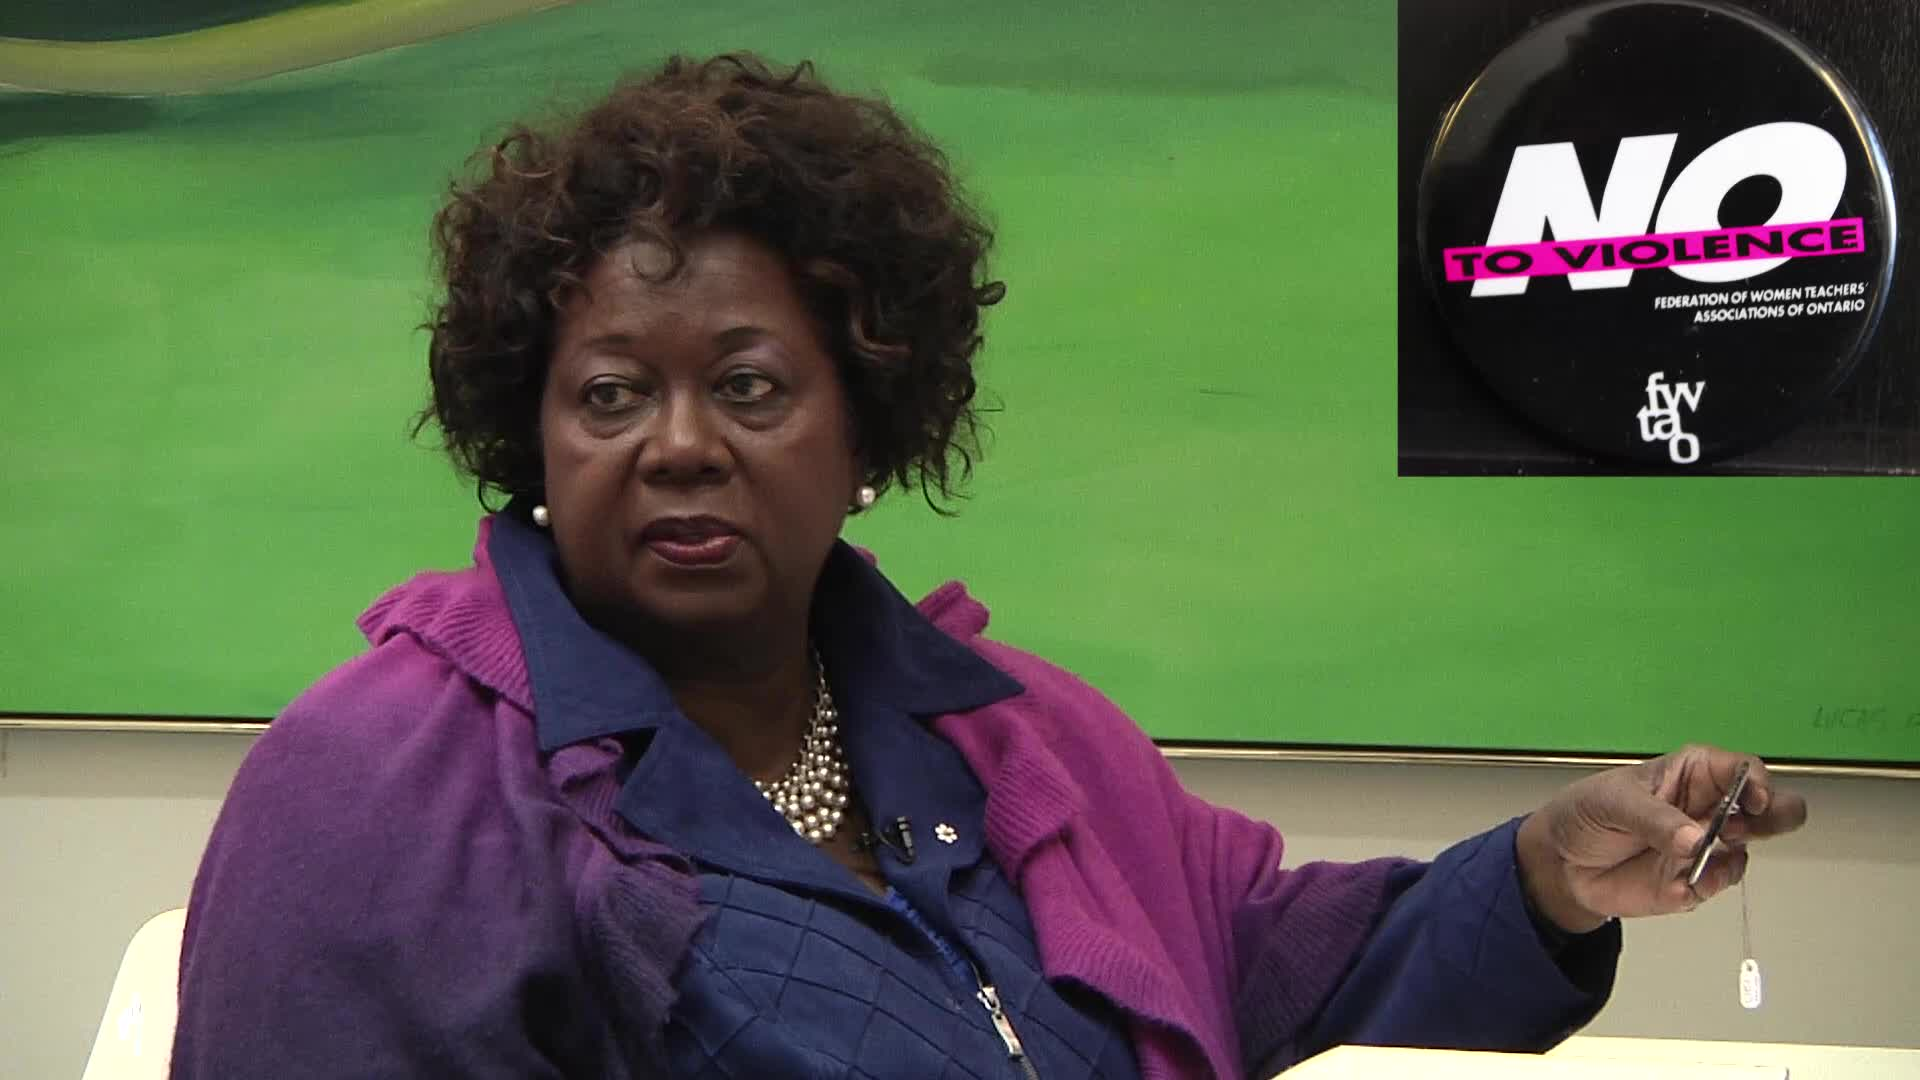 Jean Augustine interview: No to violence button